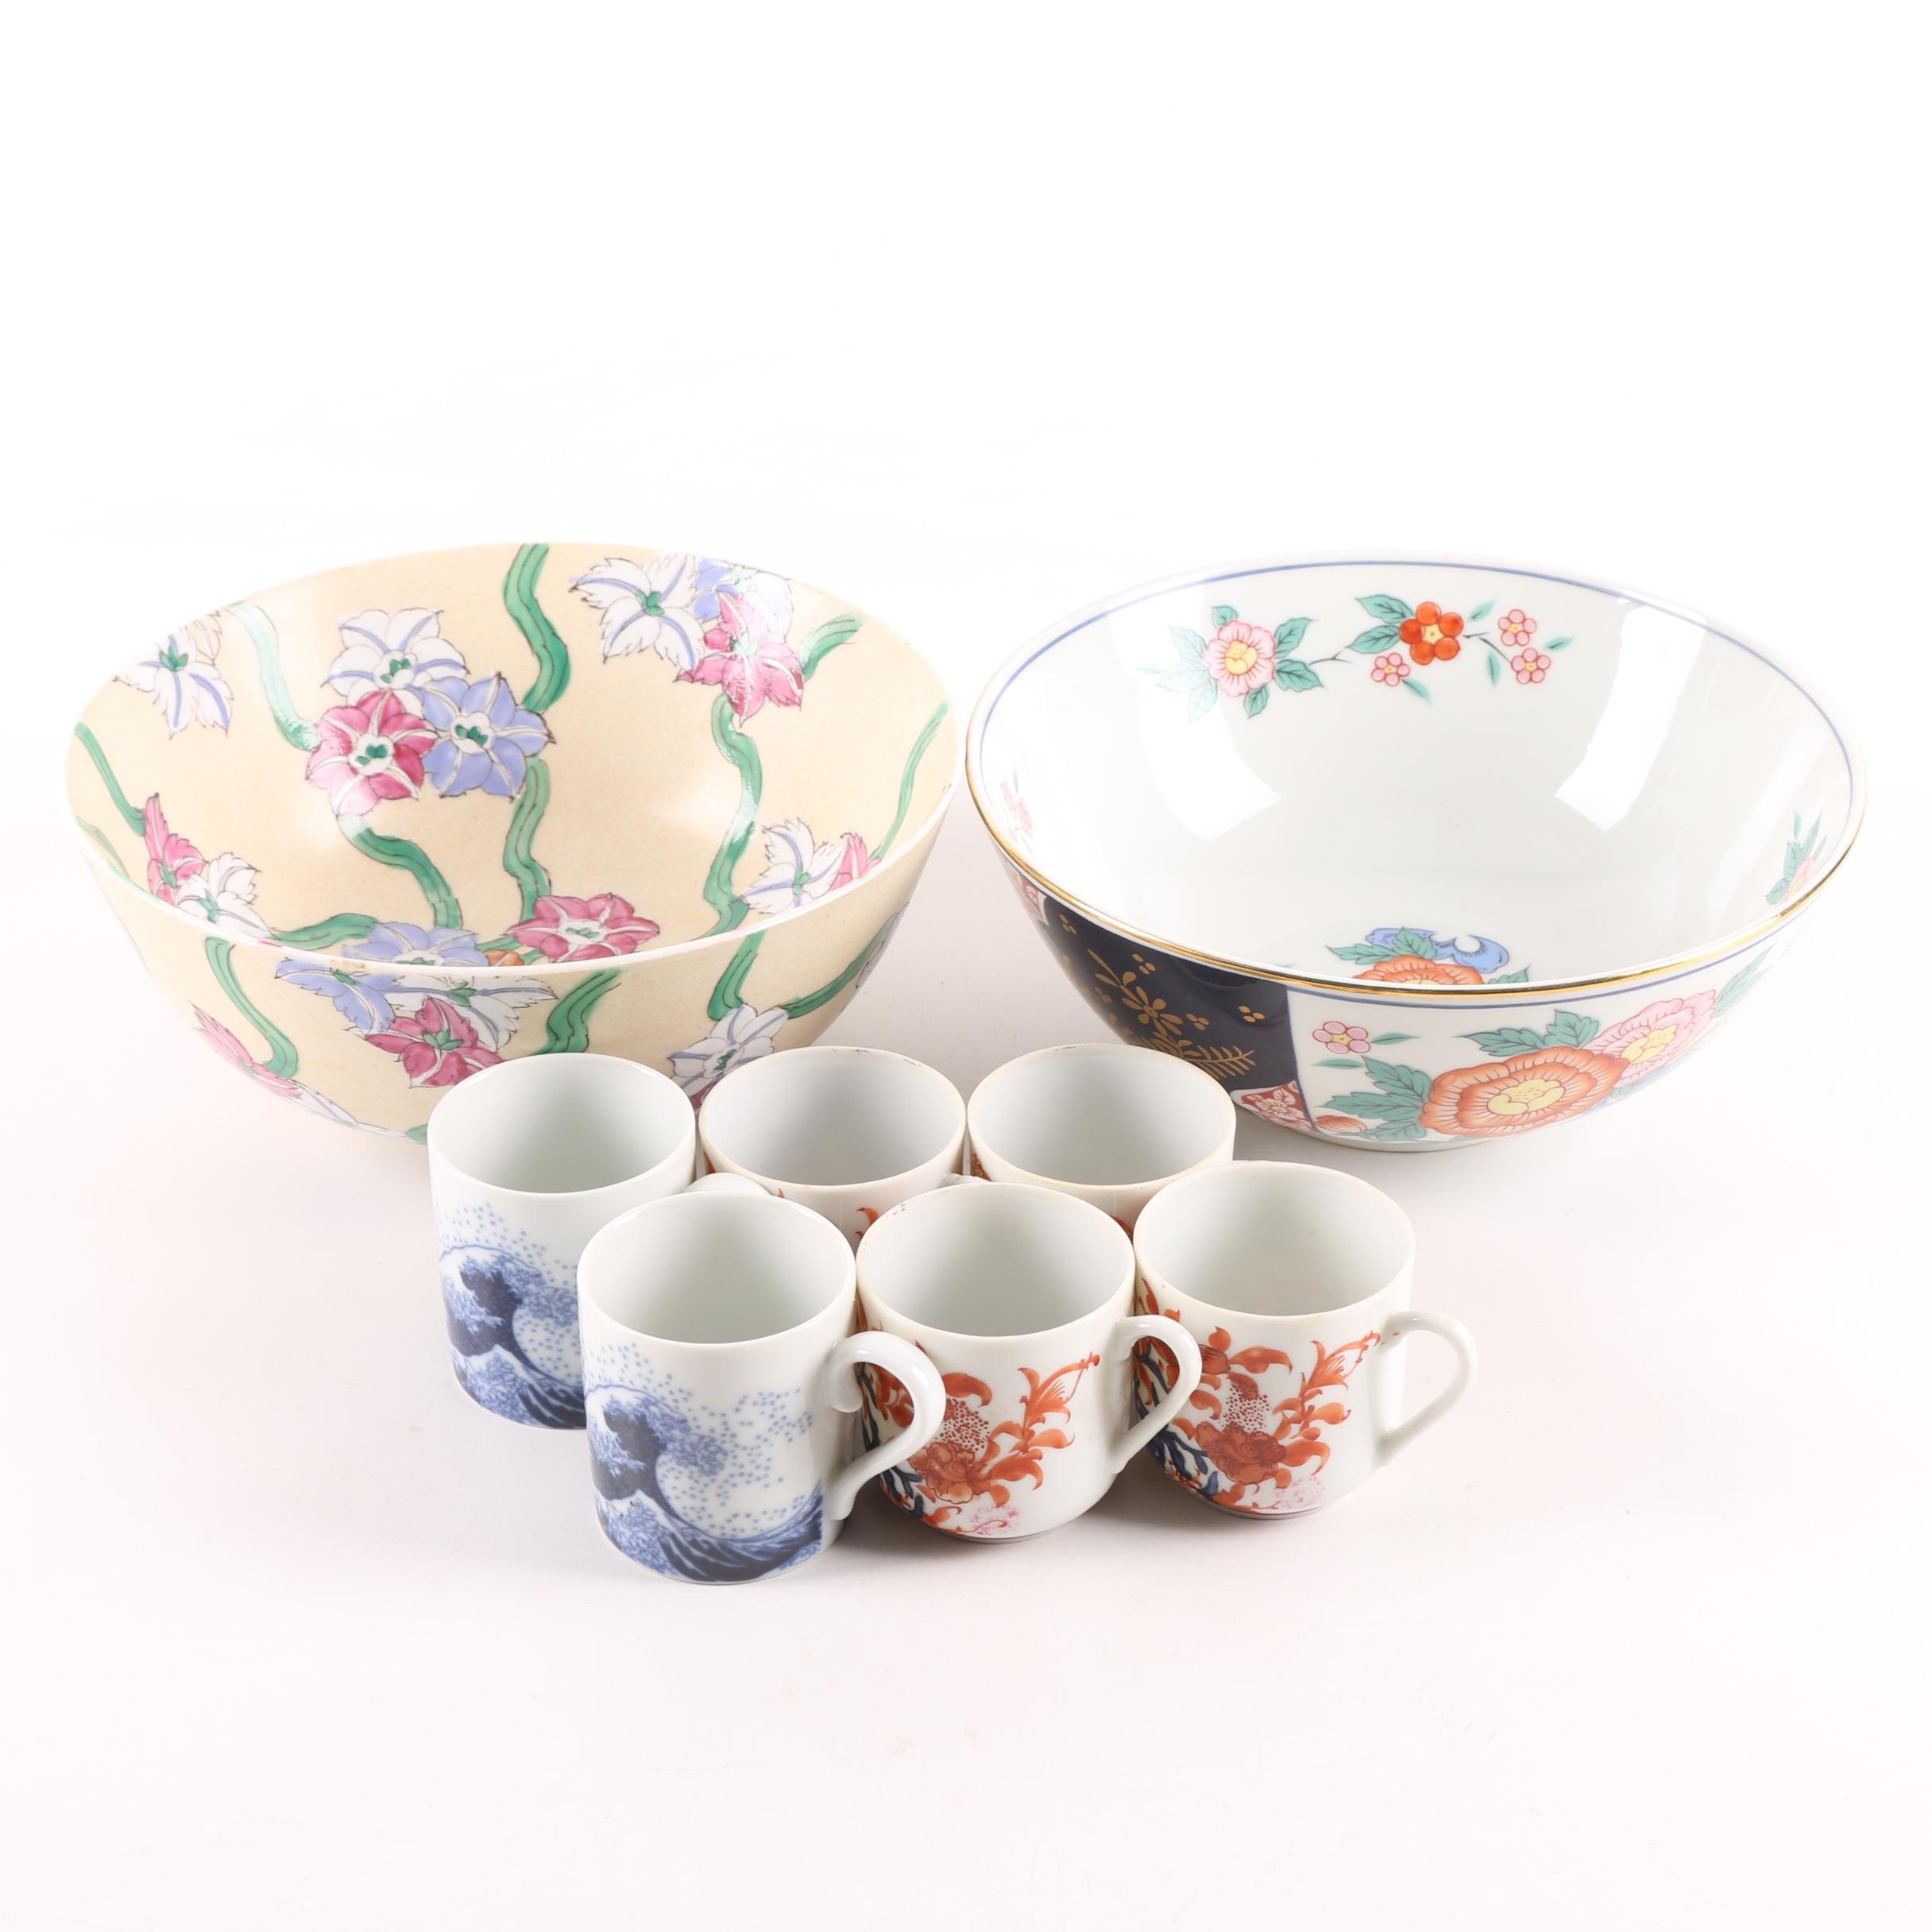 Asian Themed Porcelain Cups and Bowls Including Sigma Taste Setter Japan